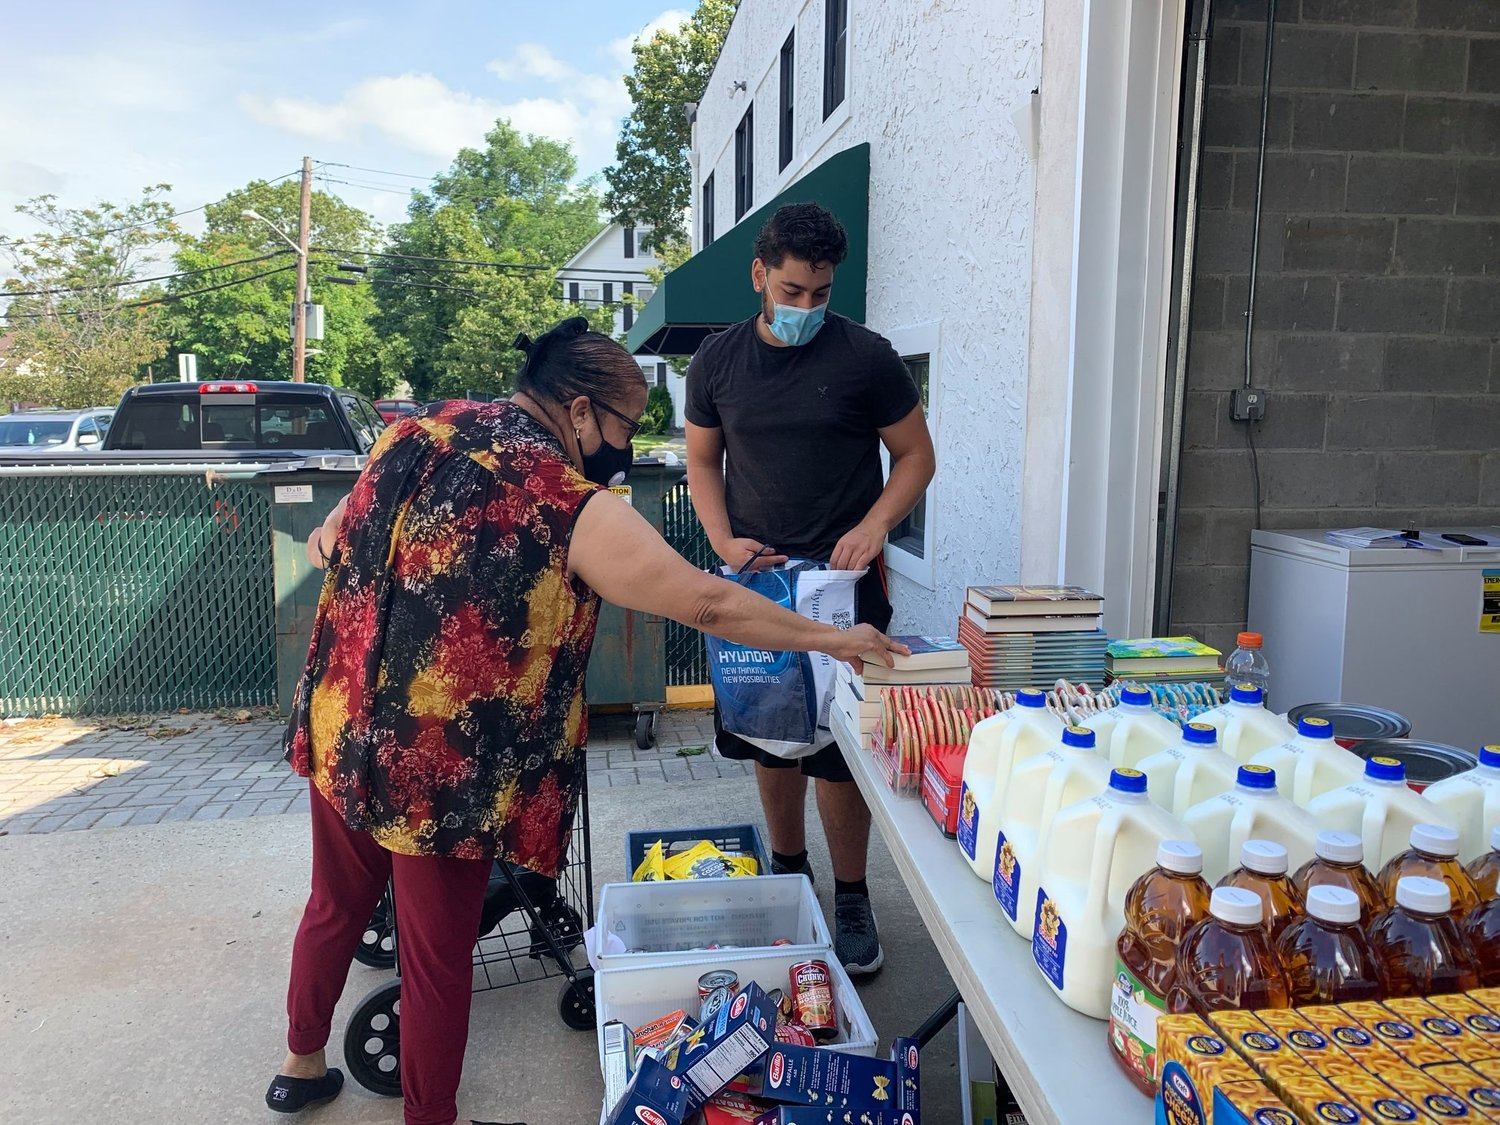 Volunteer Justin Ciofiallo, right, provided assistance at a recent food drive.